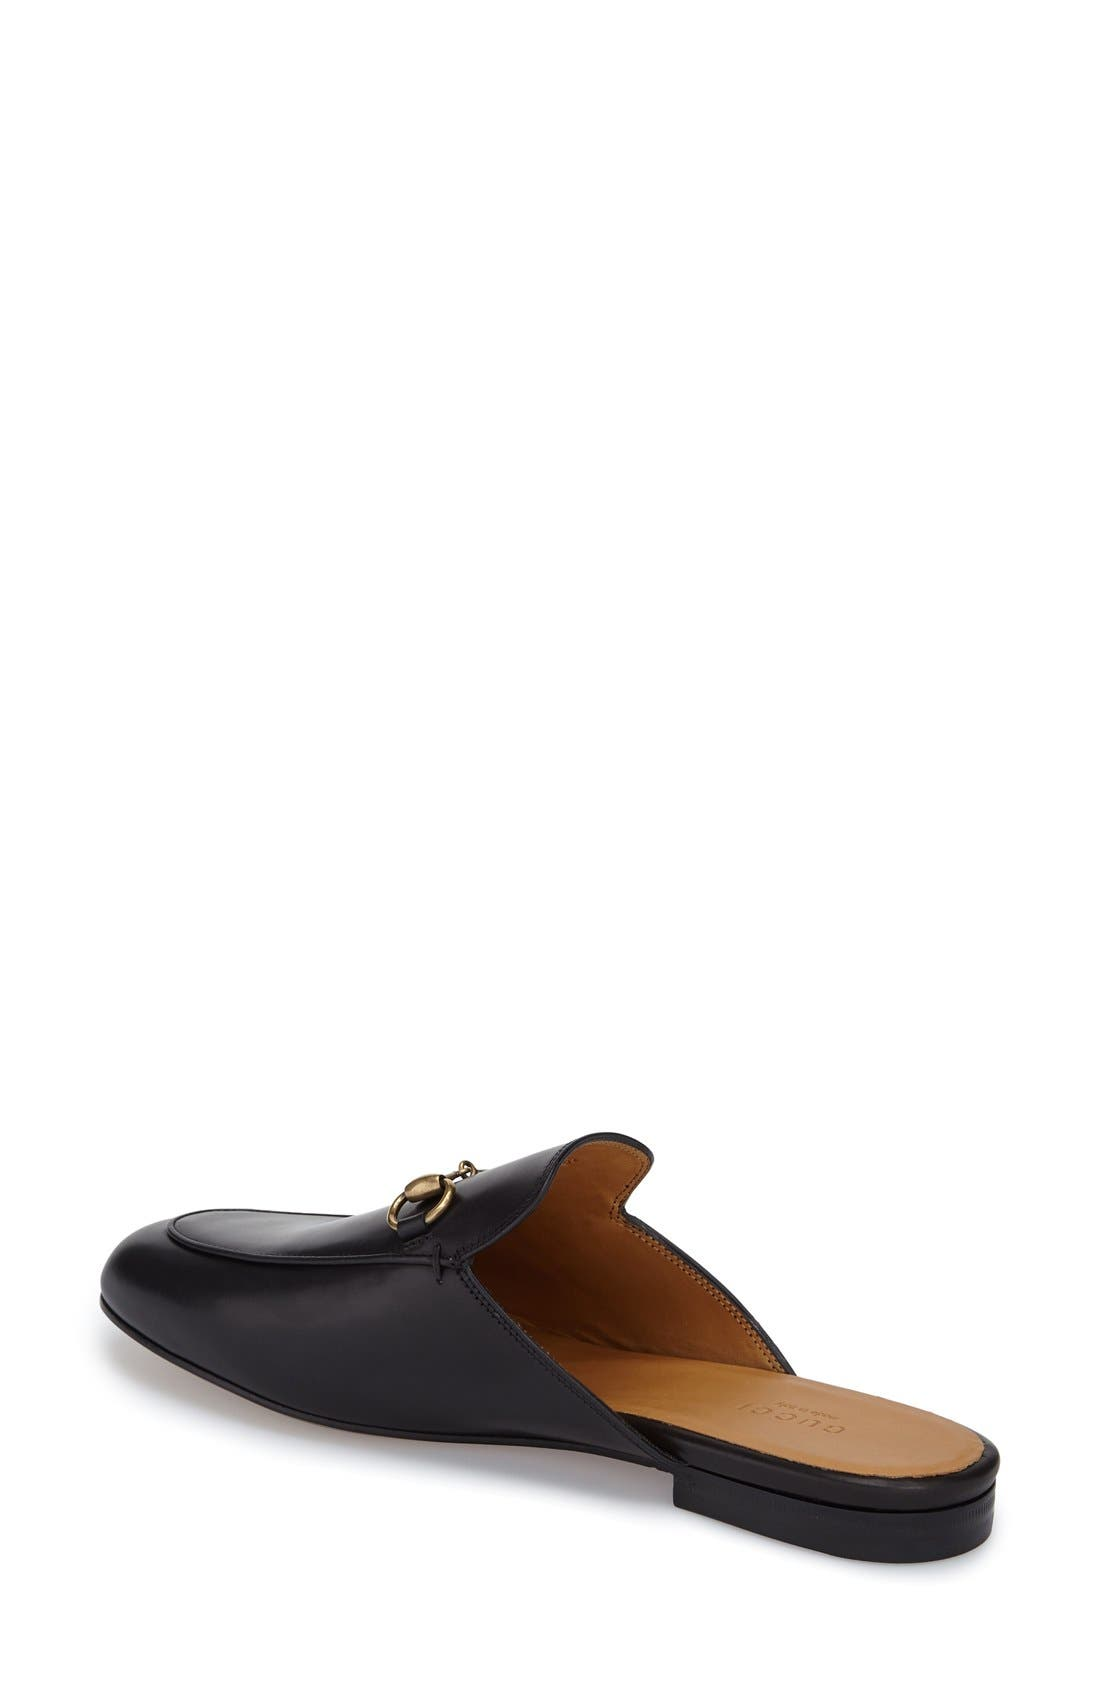 Princetown Loafer Mule,                             Alternate thumbnail 3, color,                             BLACK LEATHER